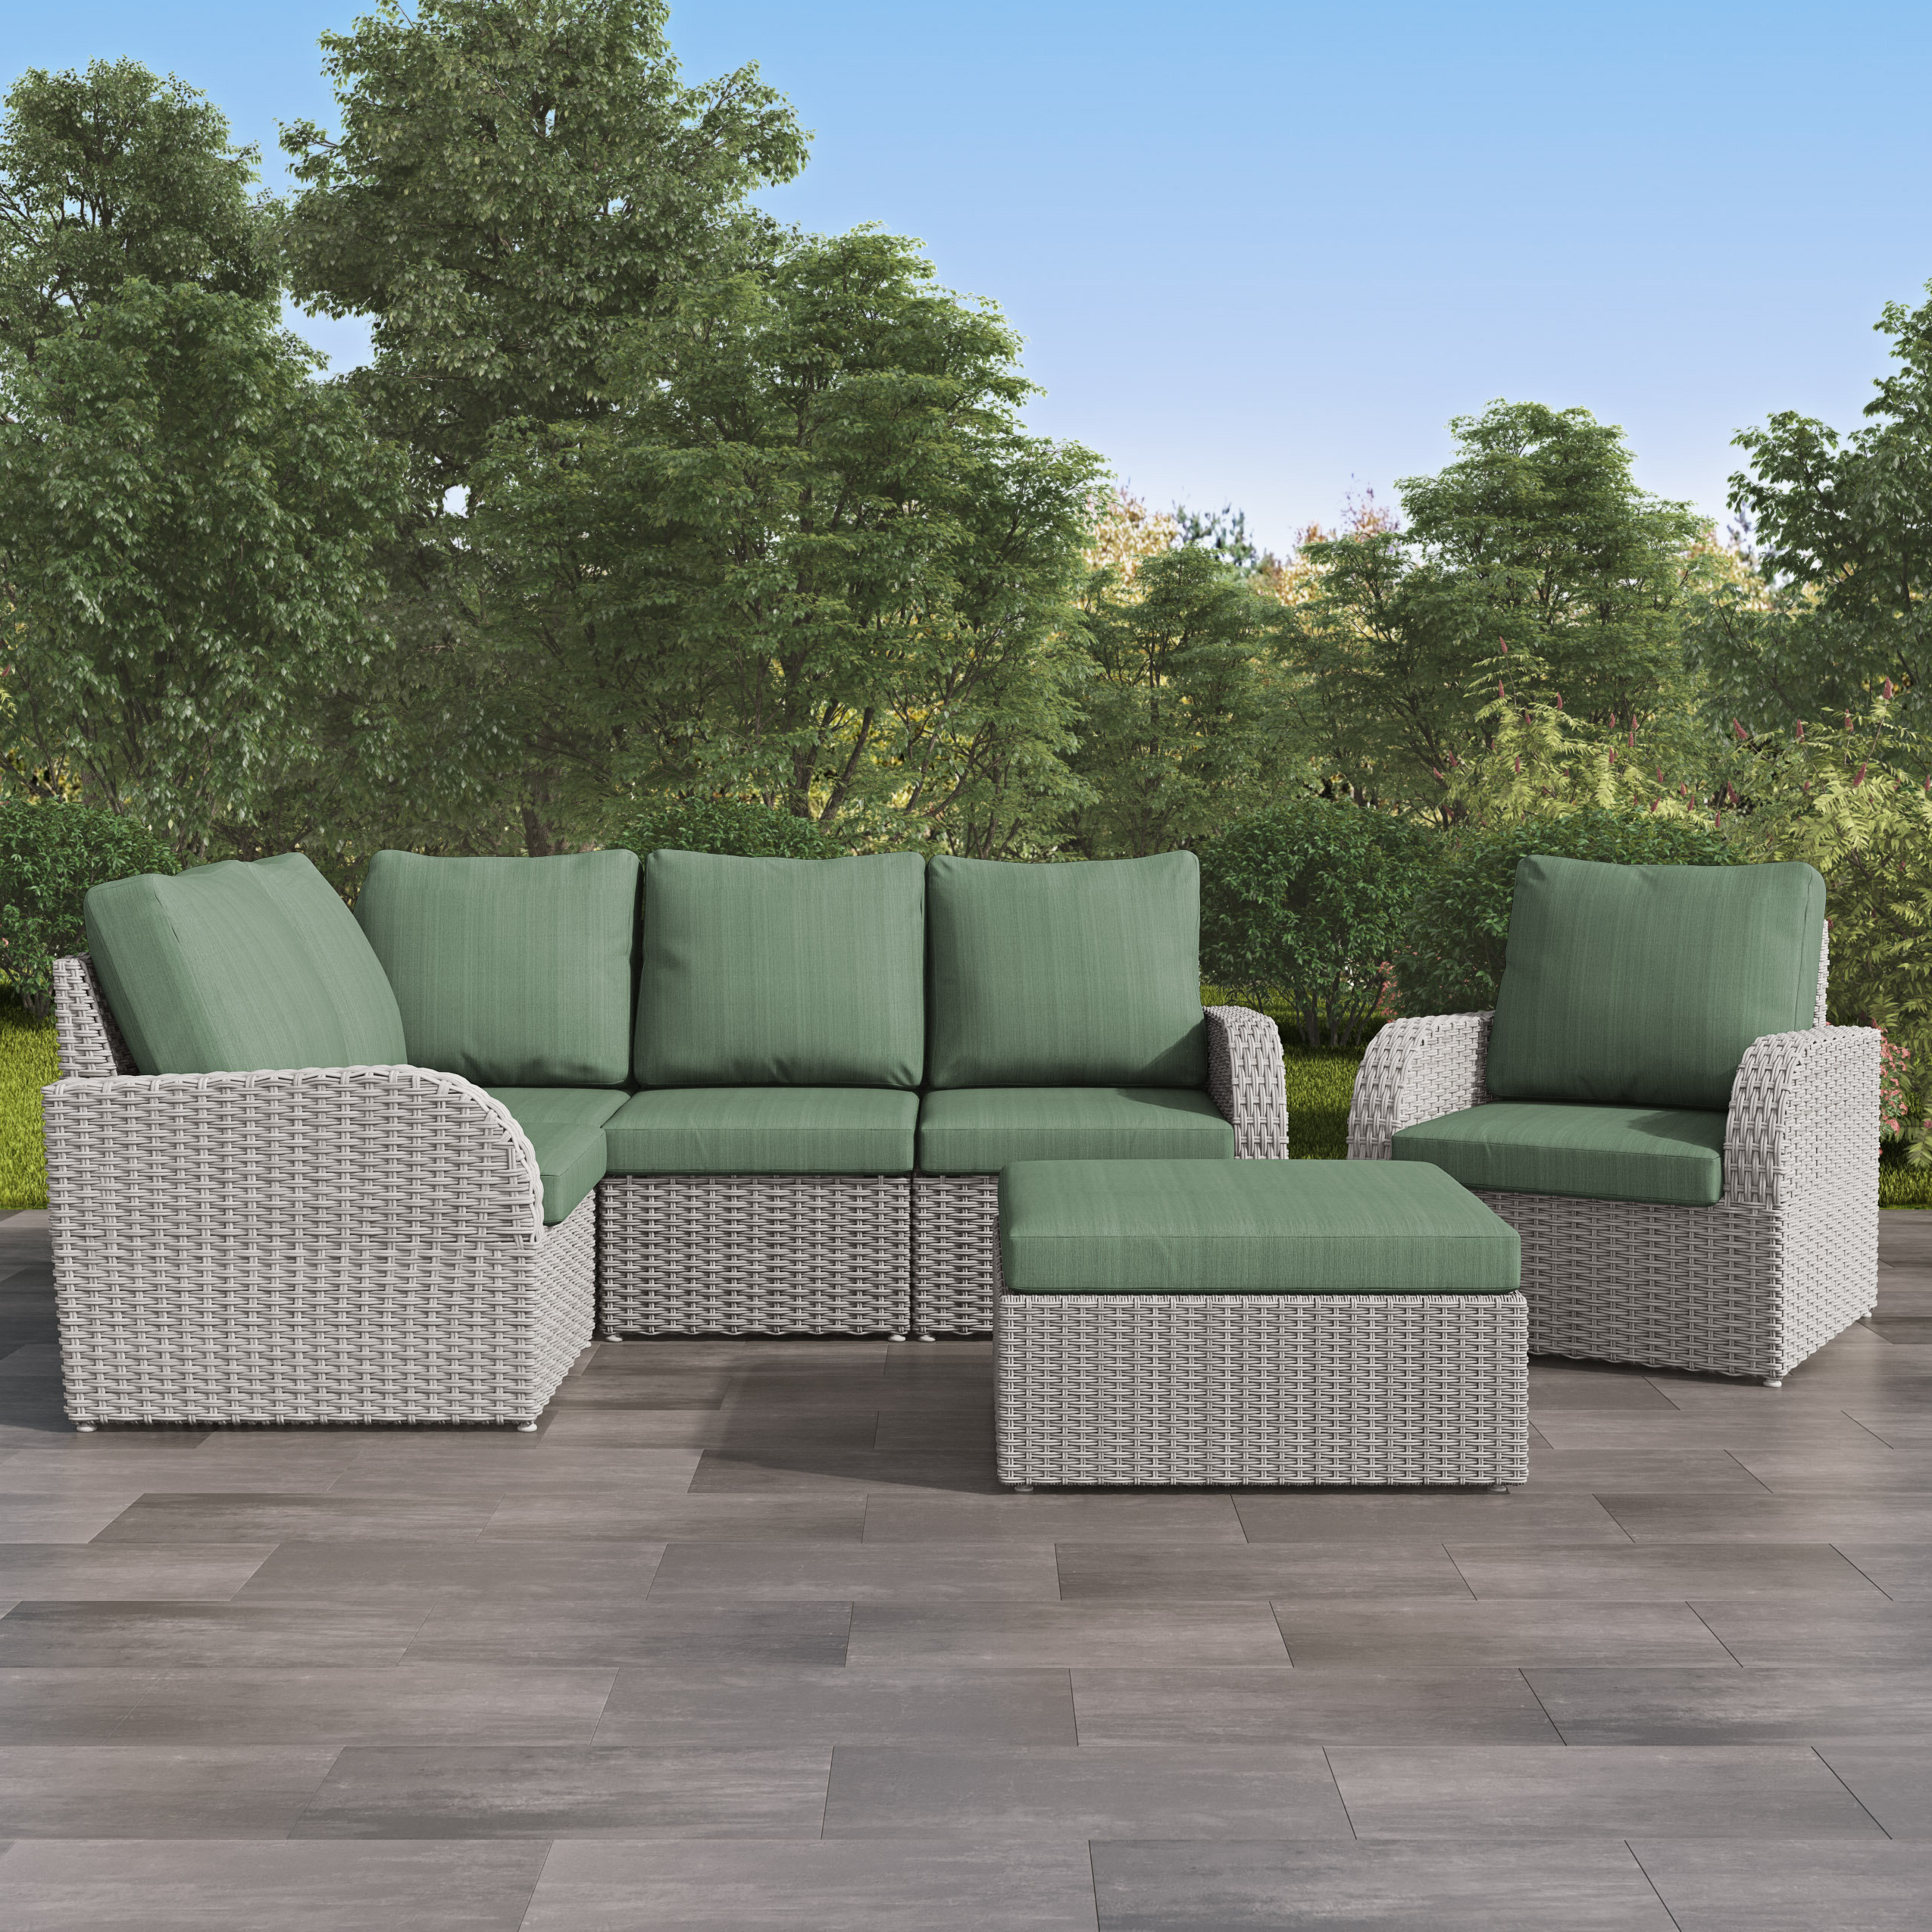 Ostrowski Patio Sectionals With Cushions Intended For Most Current Killingworth Patio Sectional With Cushions (Gallery 7 of 25)